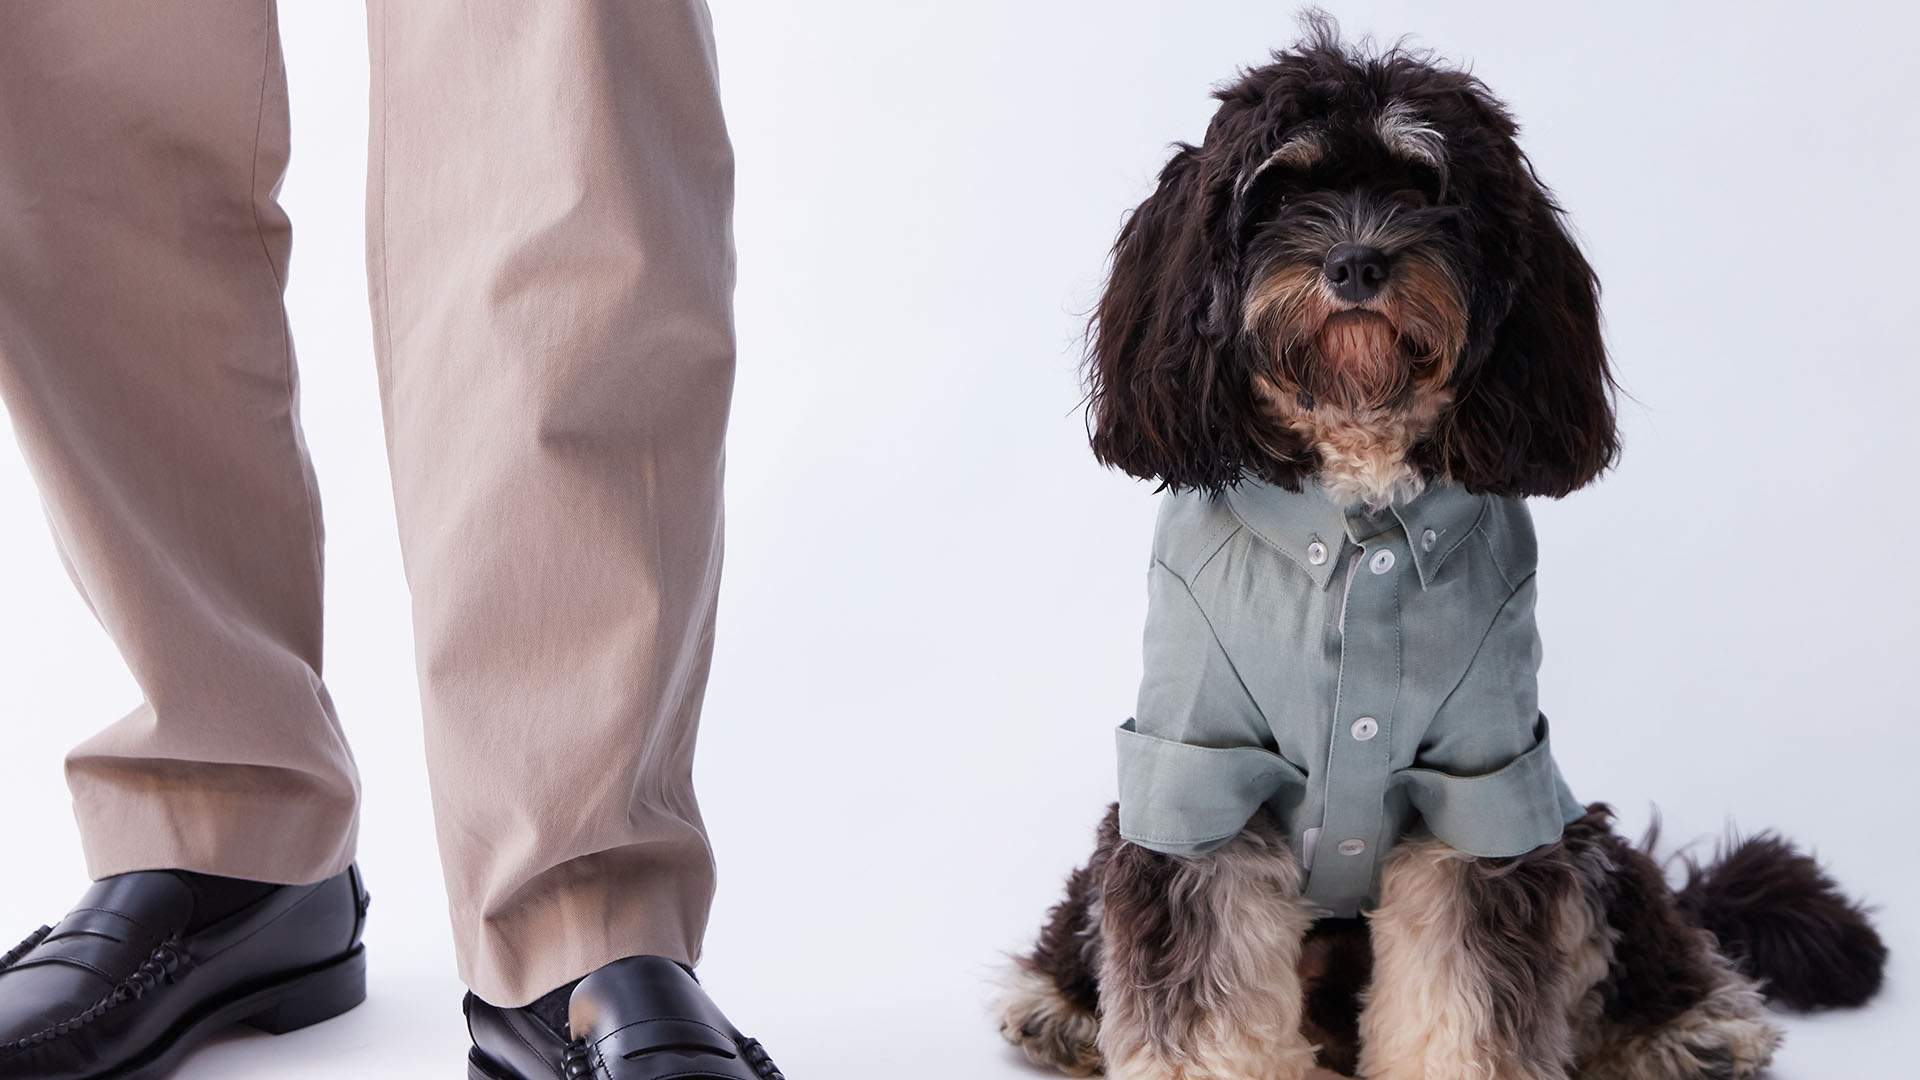 The Iconic Has Launched a Stylish New Pet Fashion Range for Supremely Adorable Dogs